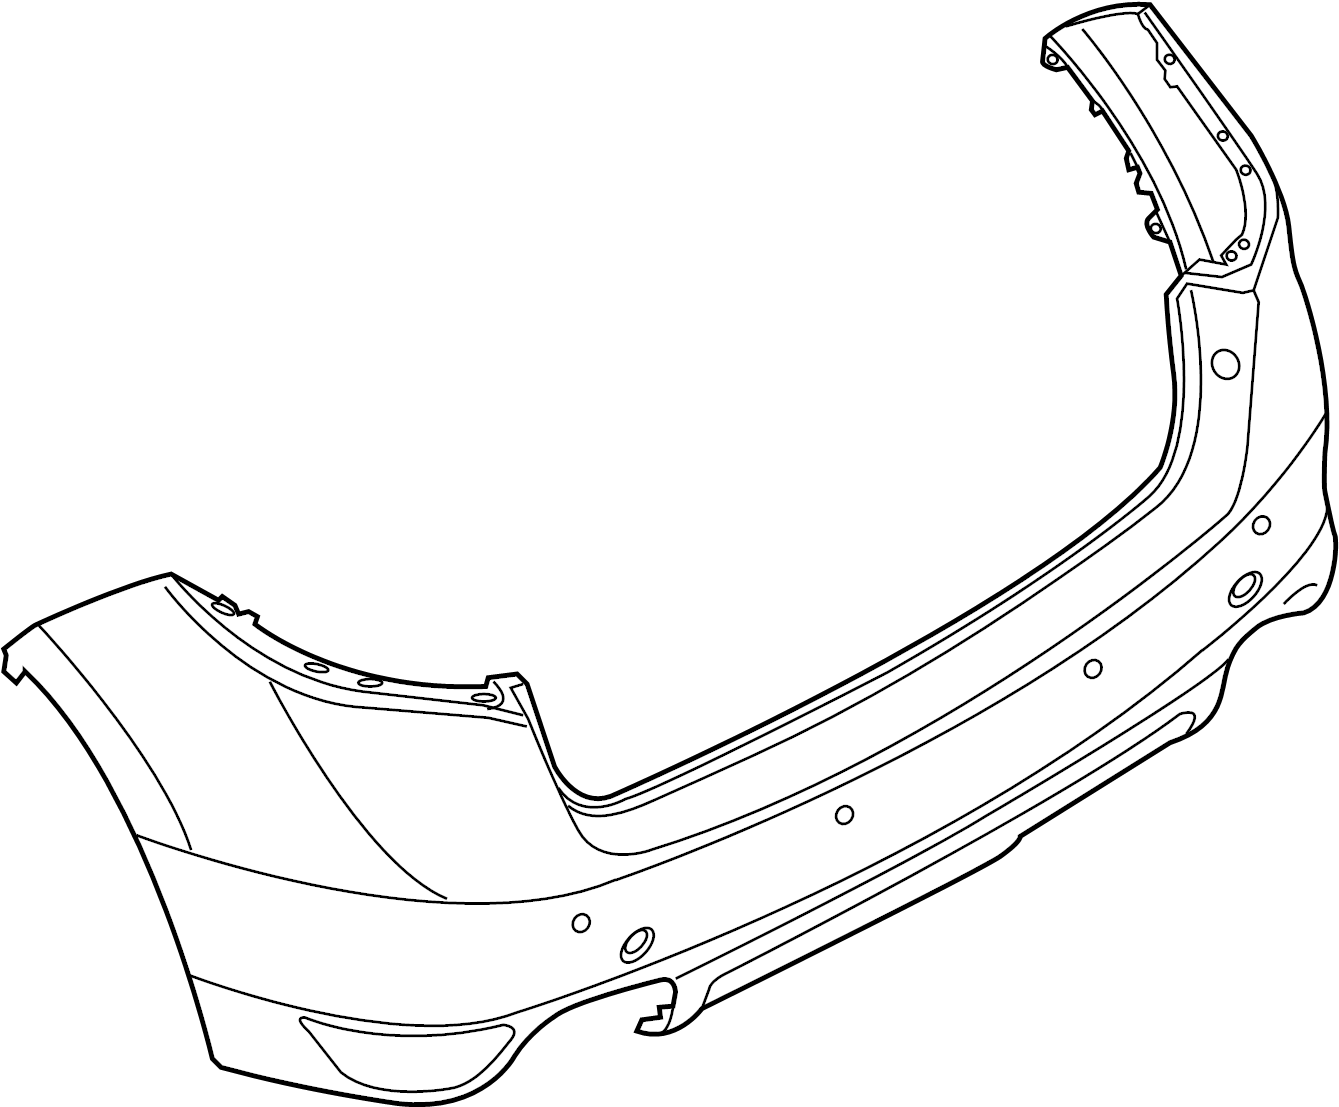 columbus ship diagram 1999 jeep wrangler fuse 2013 porsche cayenne bumper cover lining rear prime co